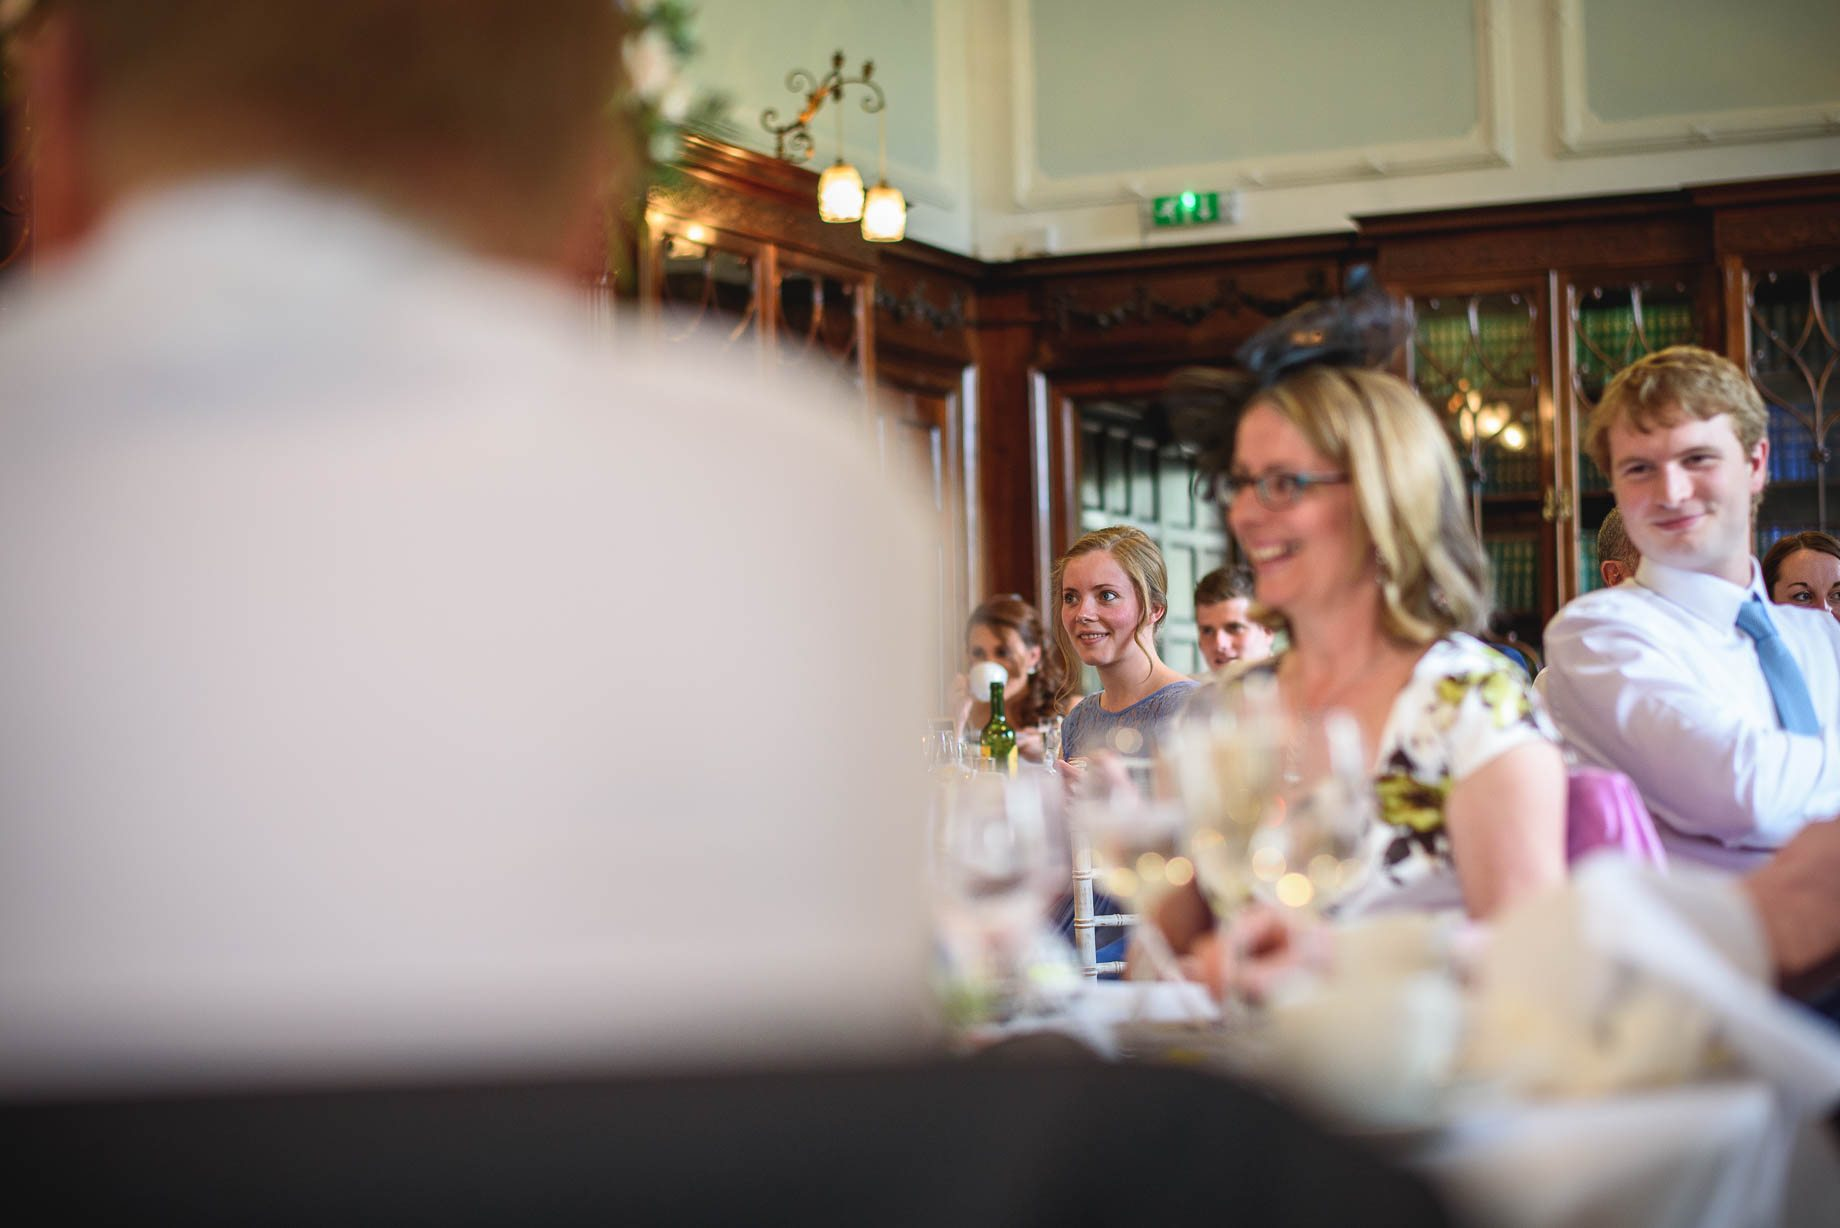 Hampshire wedding photography by Guy Collier - Emily and Tom (111 of 164)